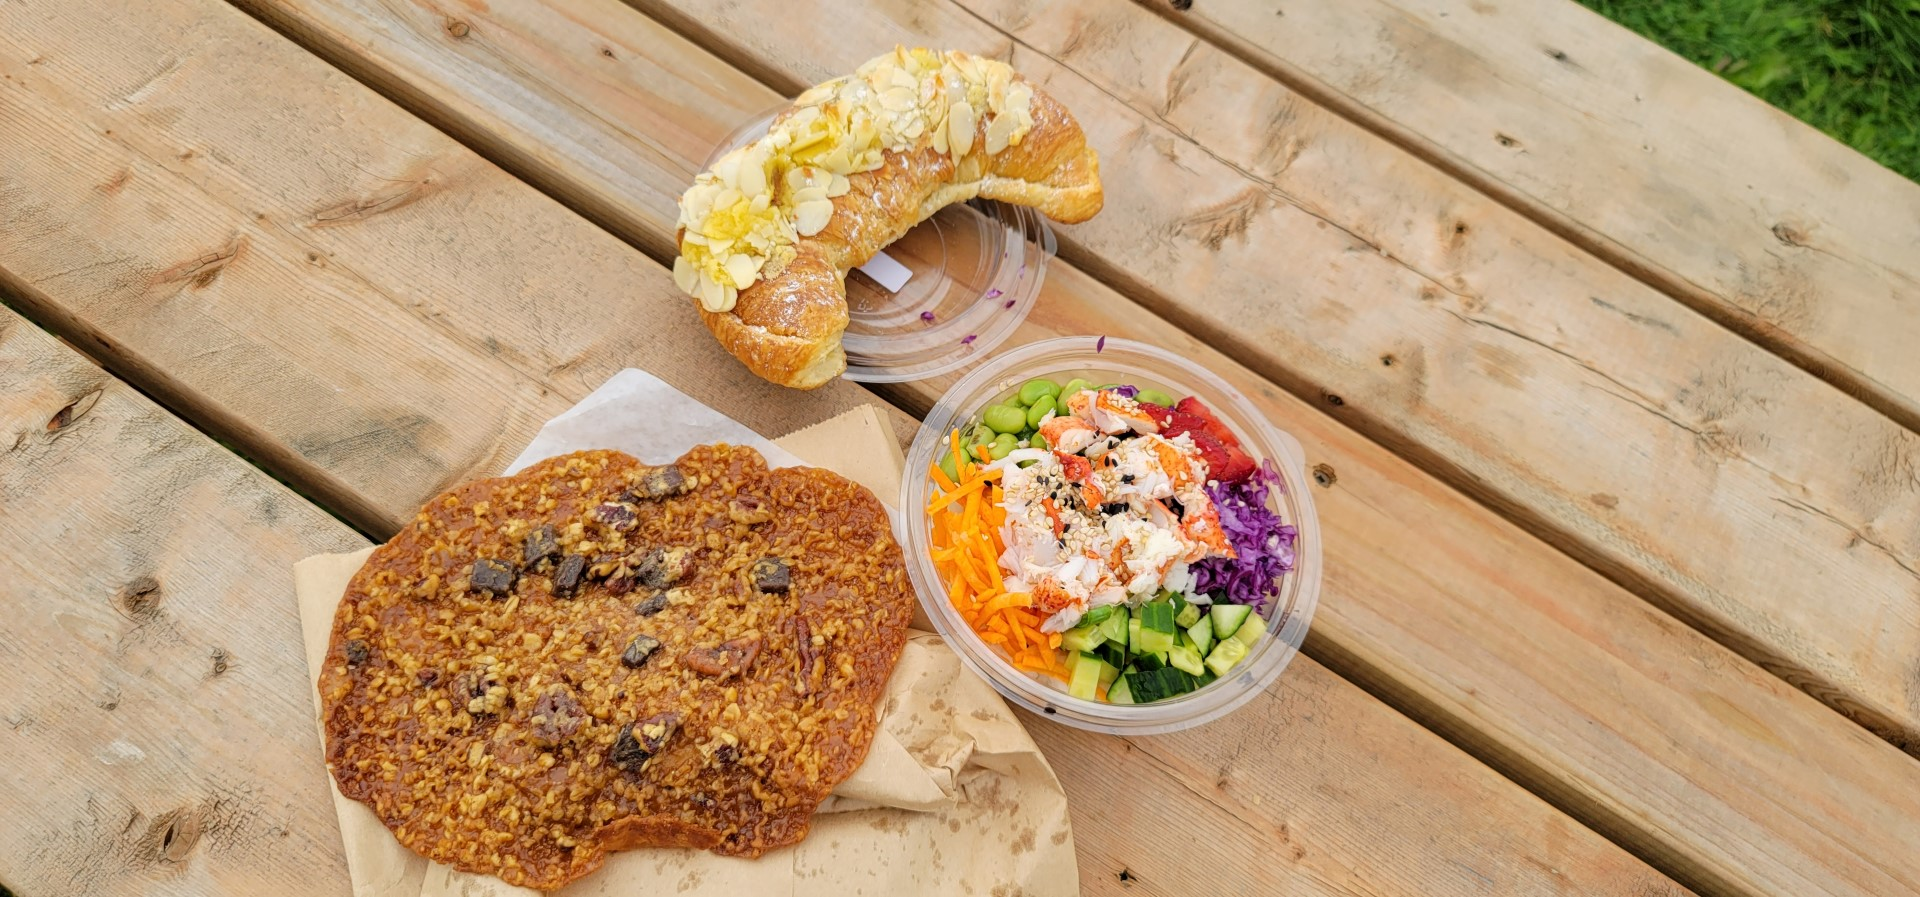 Florentine cookie, almond croissant and poke bowl on Magdalen Islands